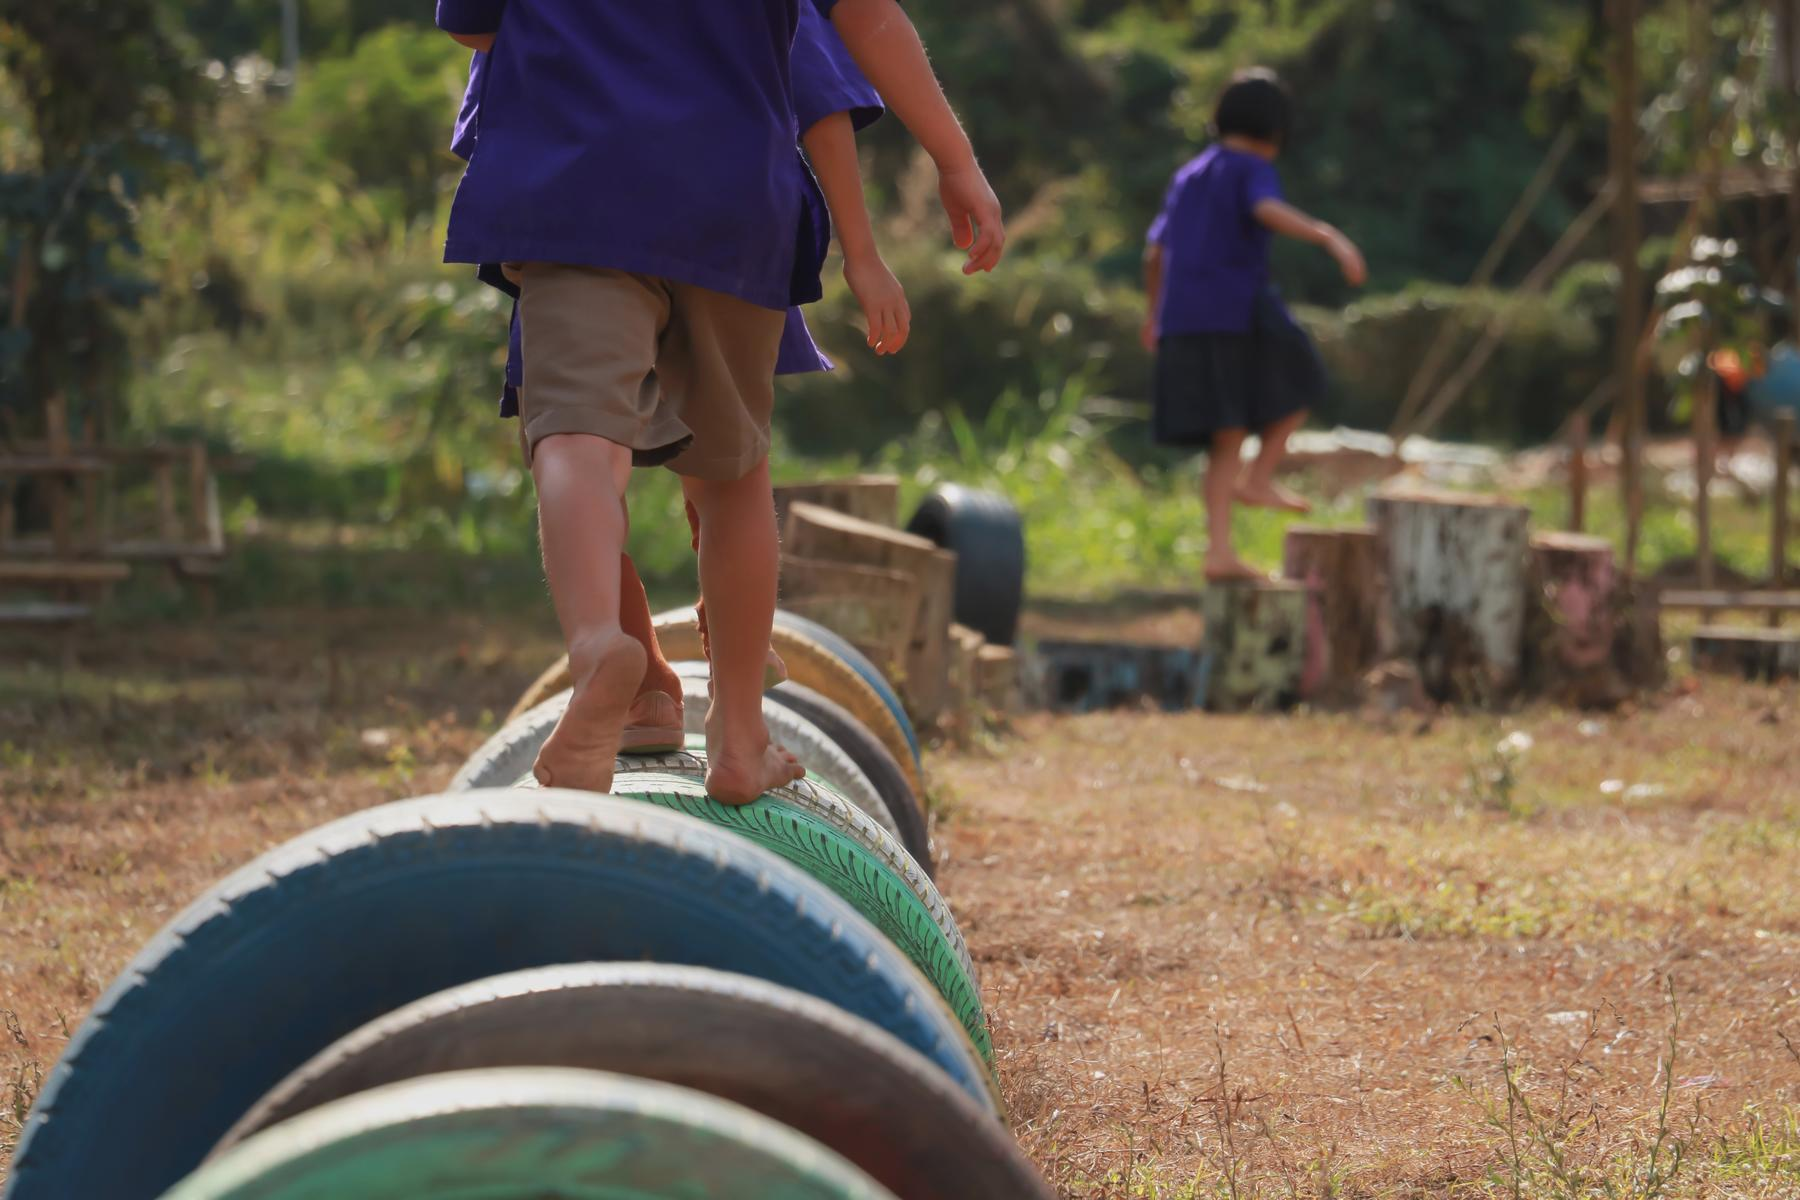 Kids Playing In Playground Running On Tires